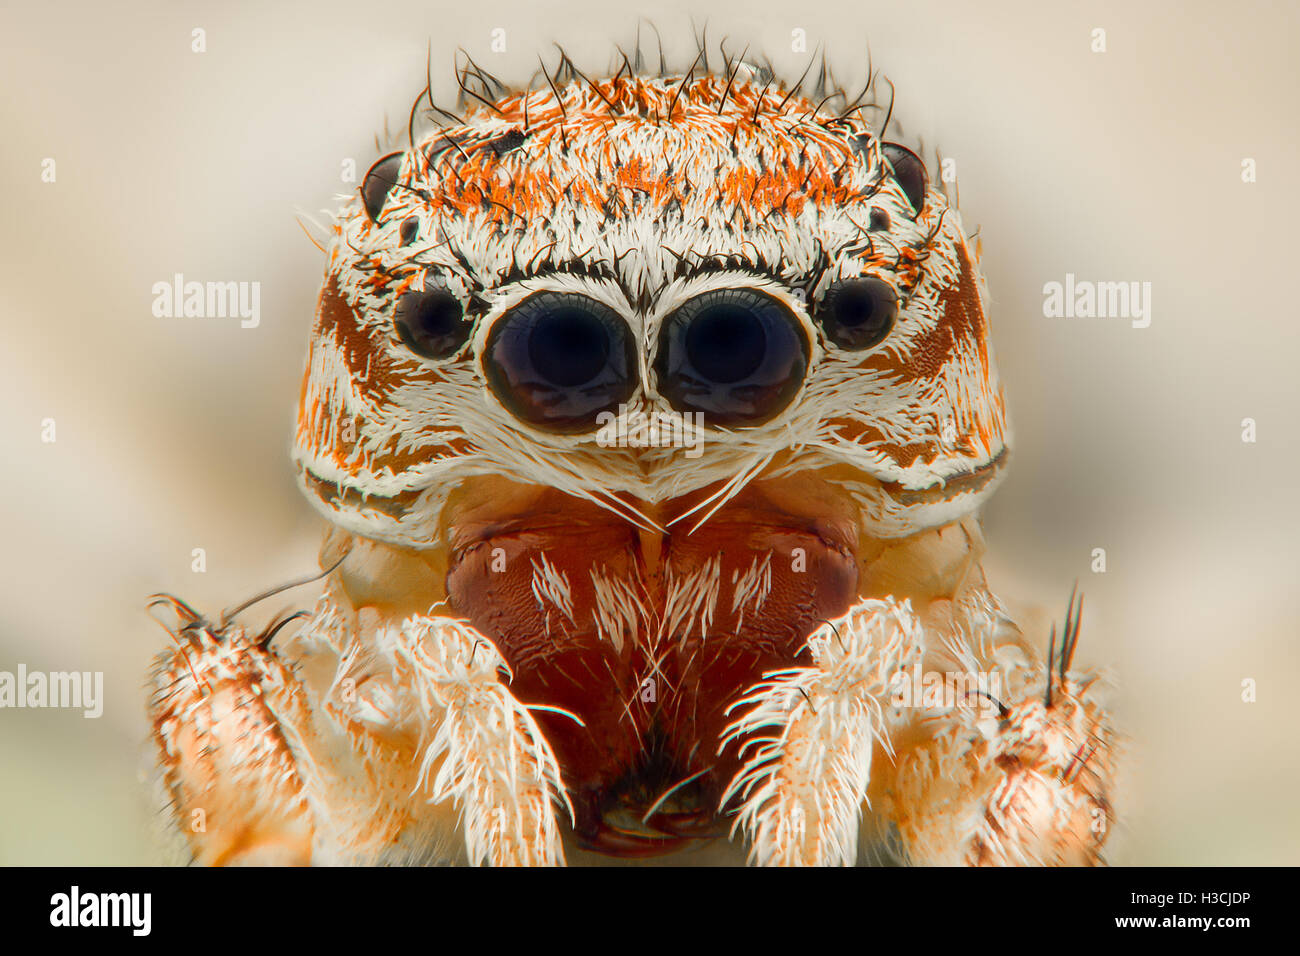 Extreme magnification - Jumping spider portrait, front view - Stock Image